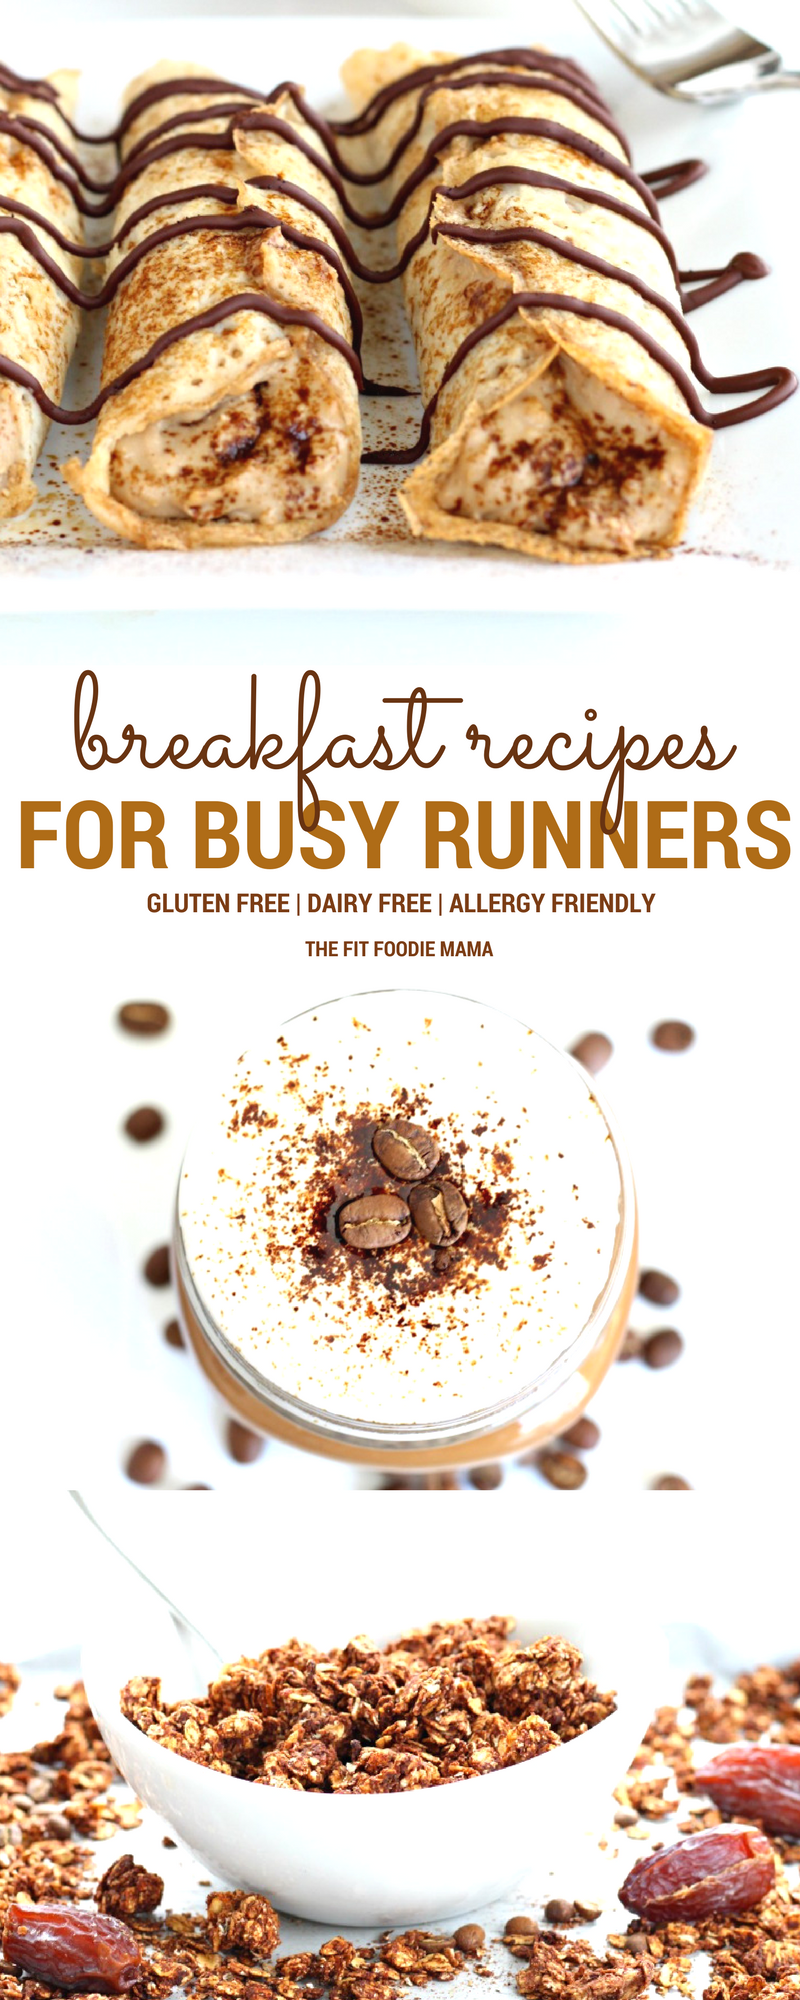 5 Quick & Healthy Breakfast Recipes for Busy Runners